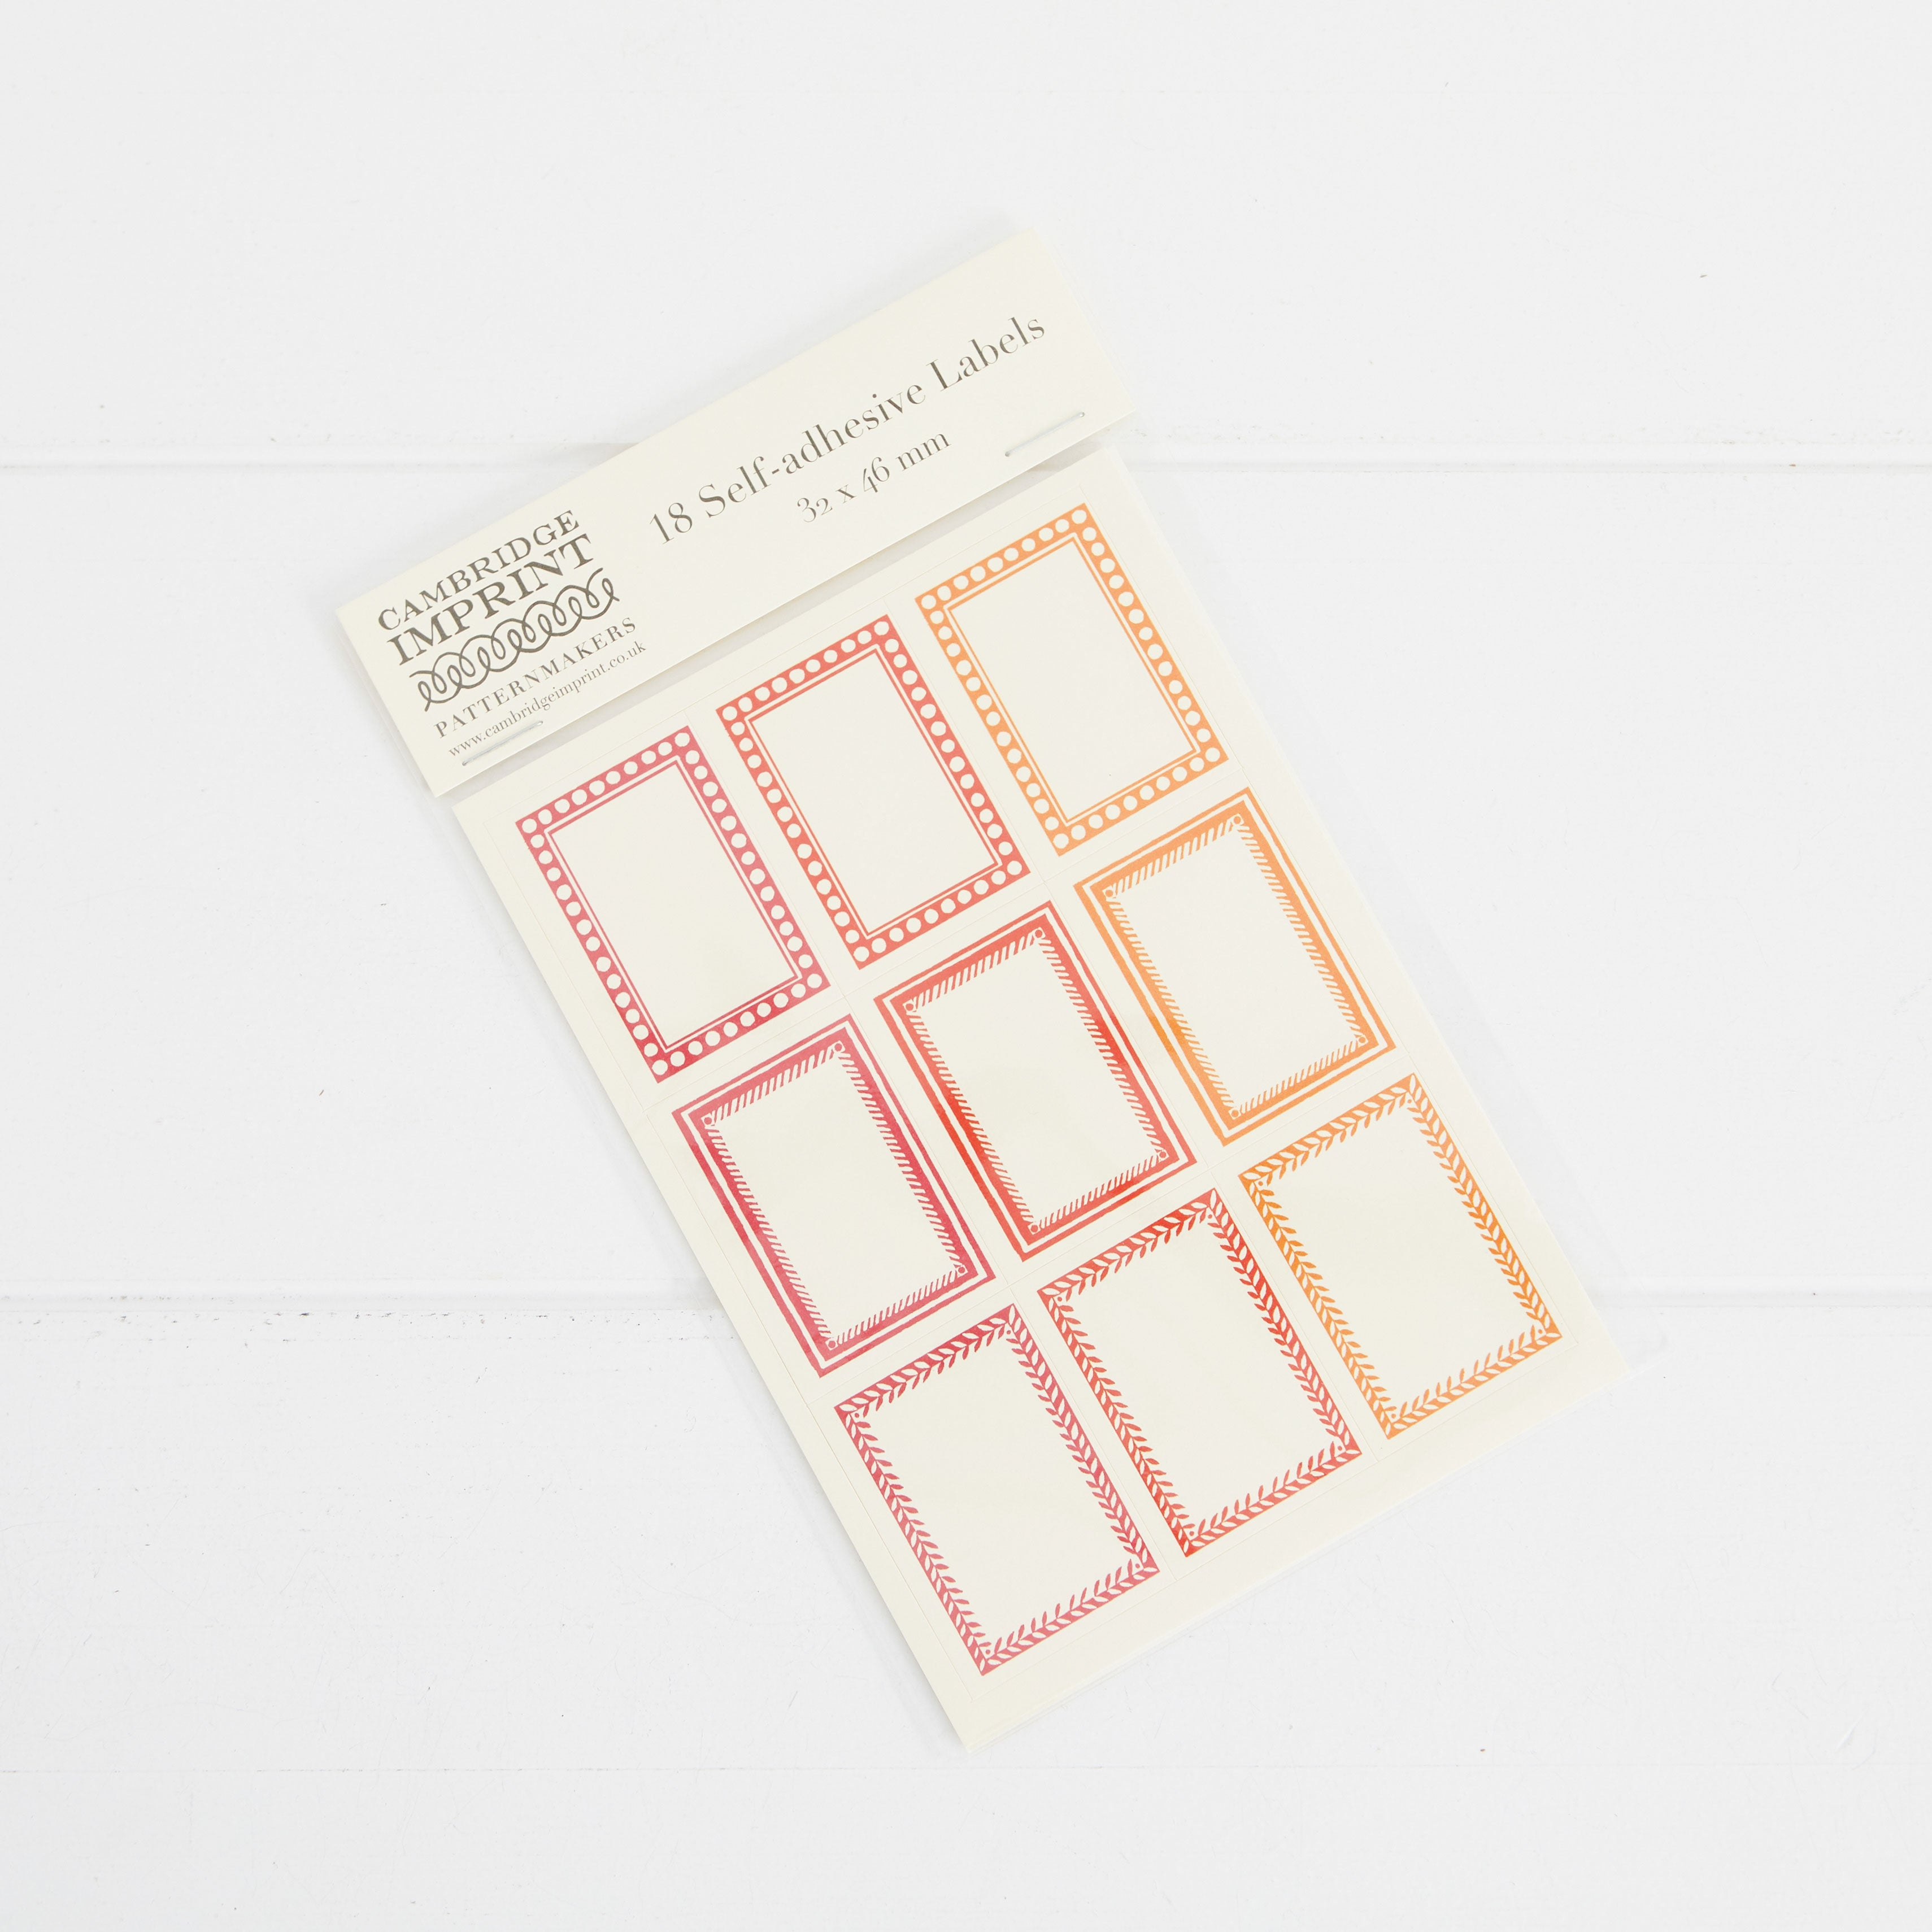 Cambridge Imprint Pack of 18 Small Self-Adhesive Labels 2